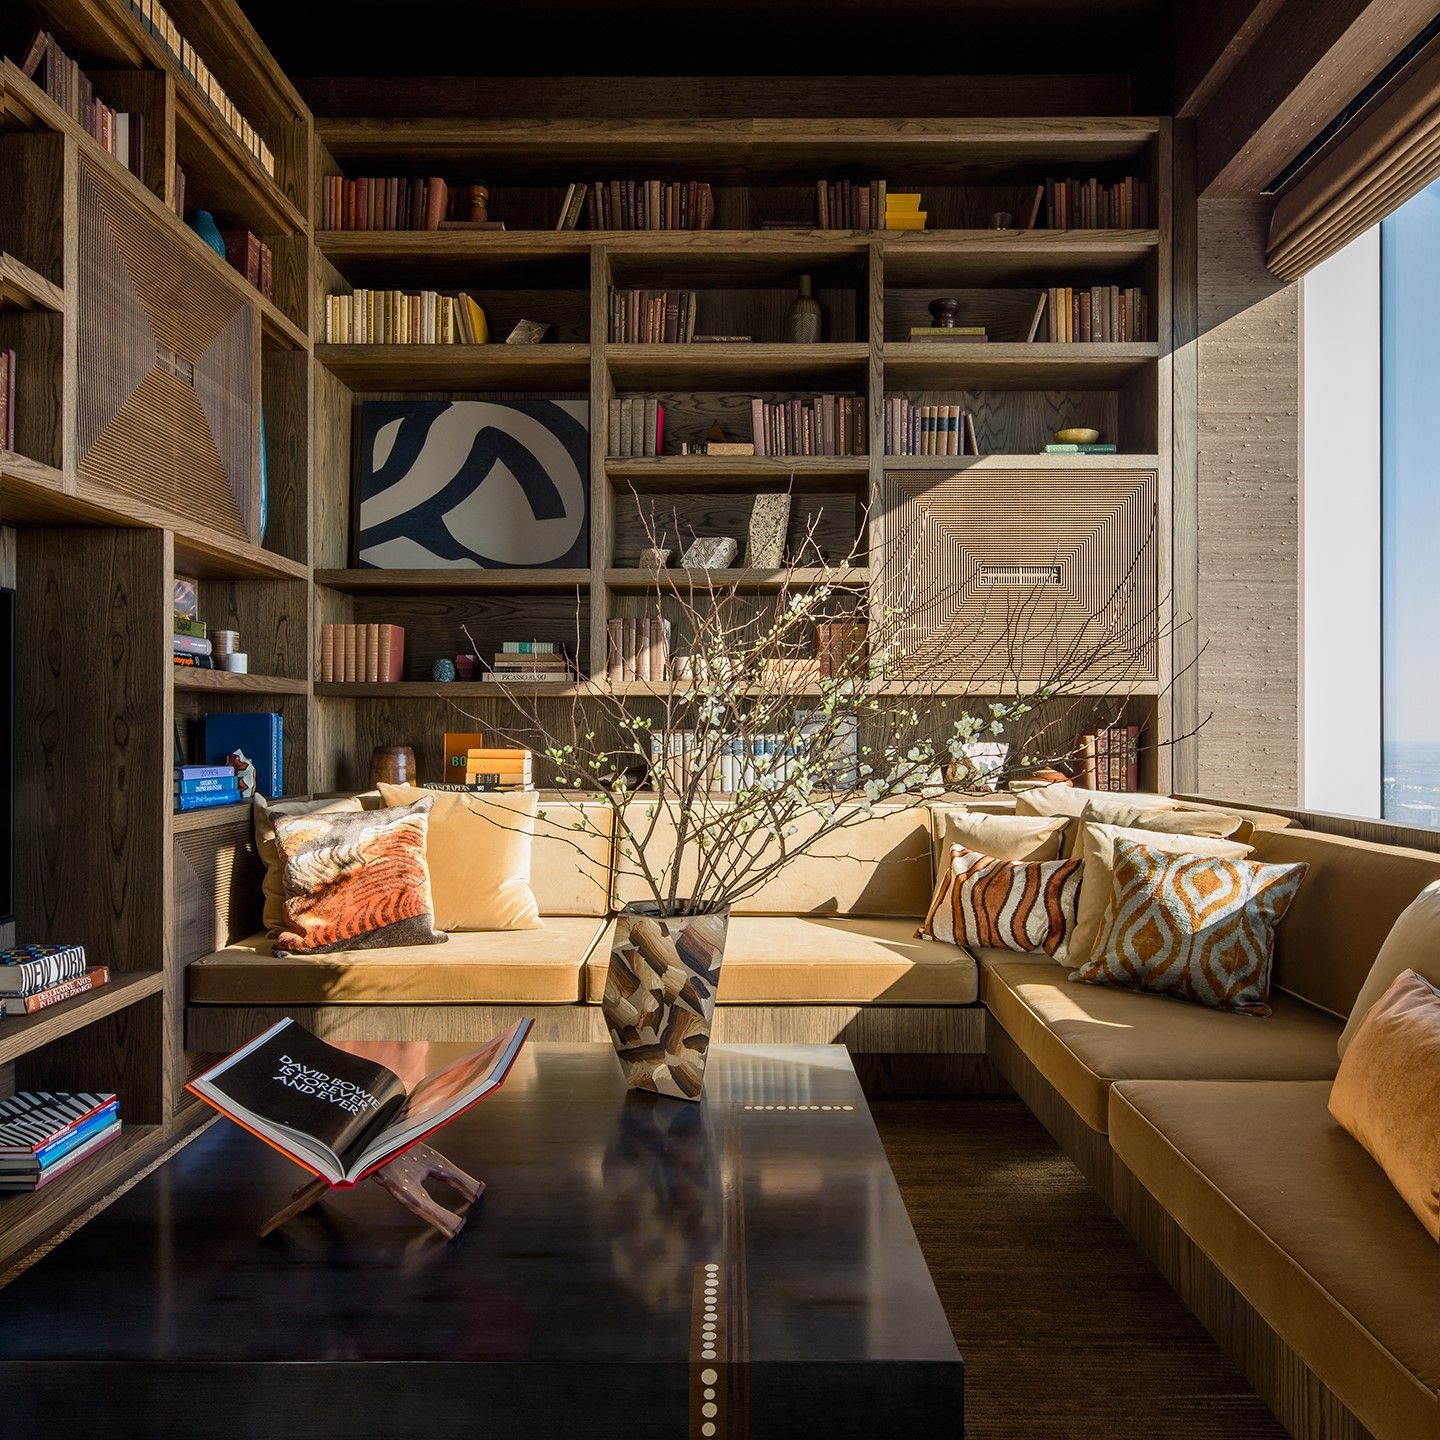 The Avenue By Executive Apartments: Here's The Jaw-Dropping Penthouse In NYC's Tallest